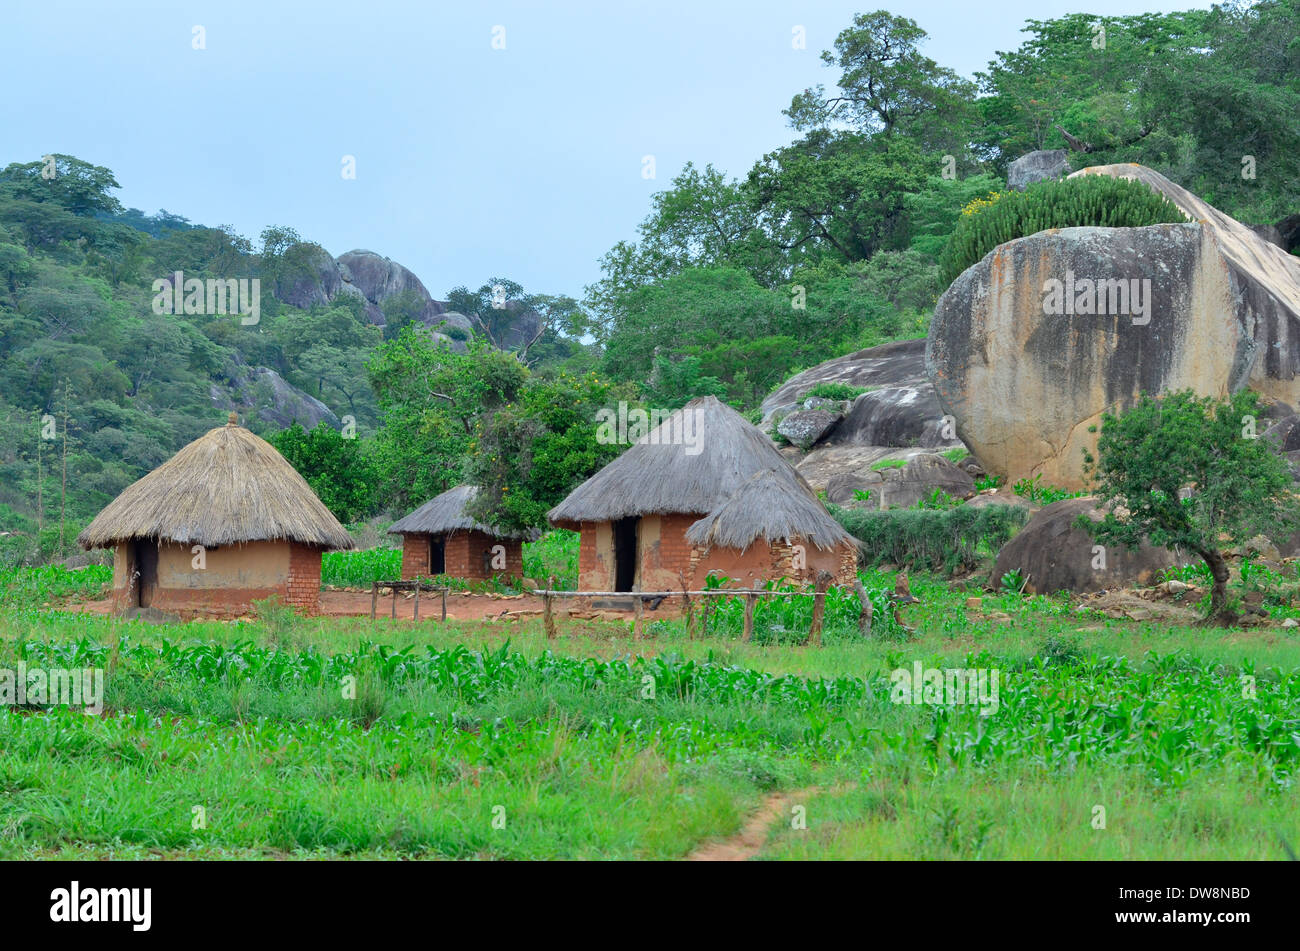 Eastern Highlands of Zimbabwe in summer with bright green colours and mountainous habitat. Maize fields and traditional huts. - Stock Image